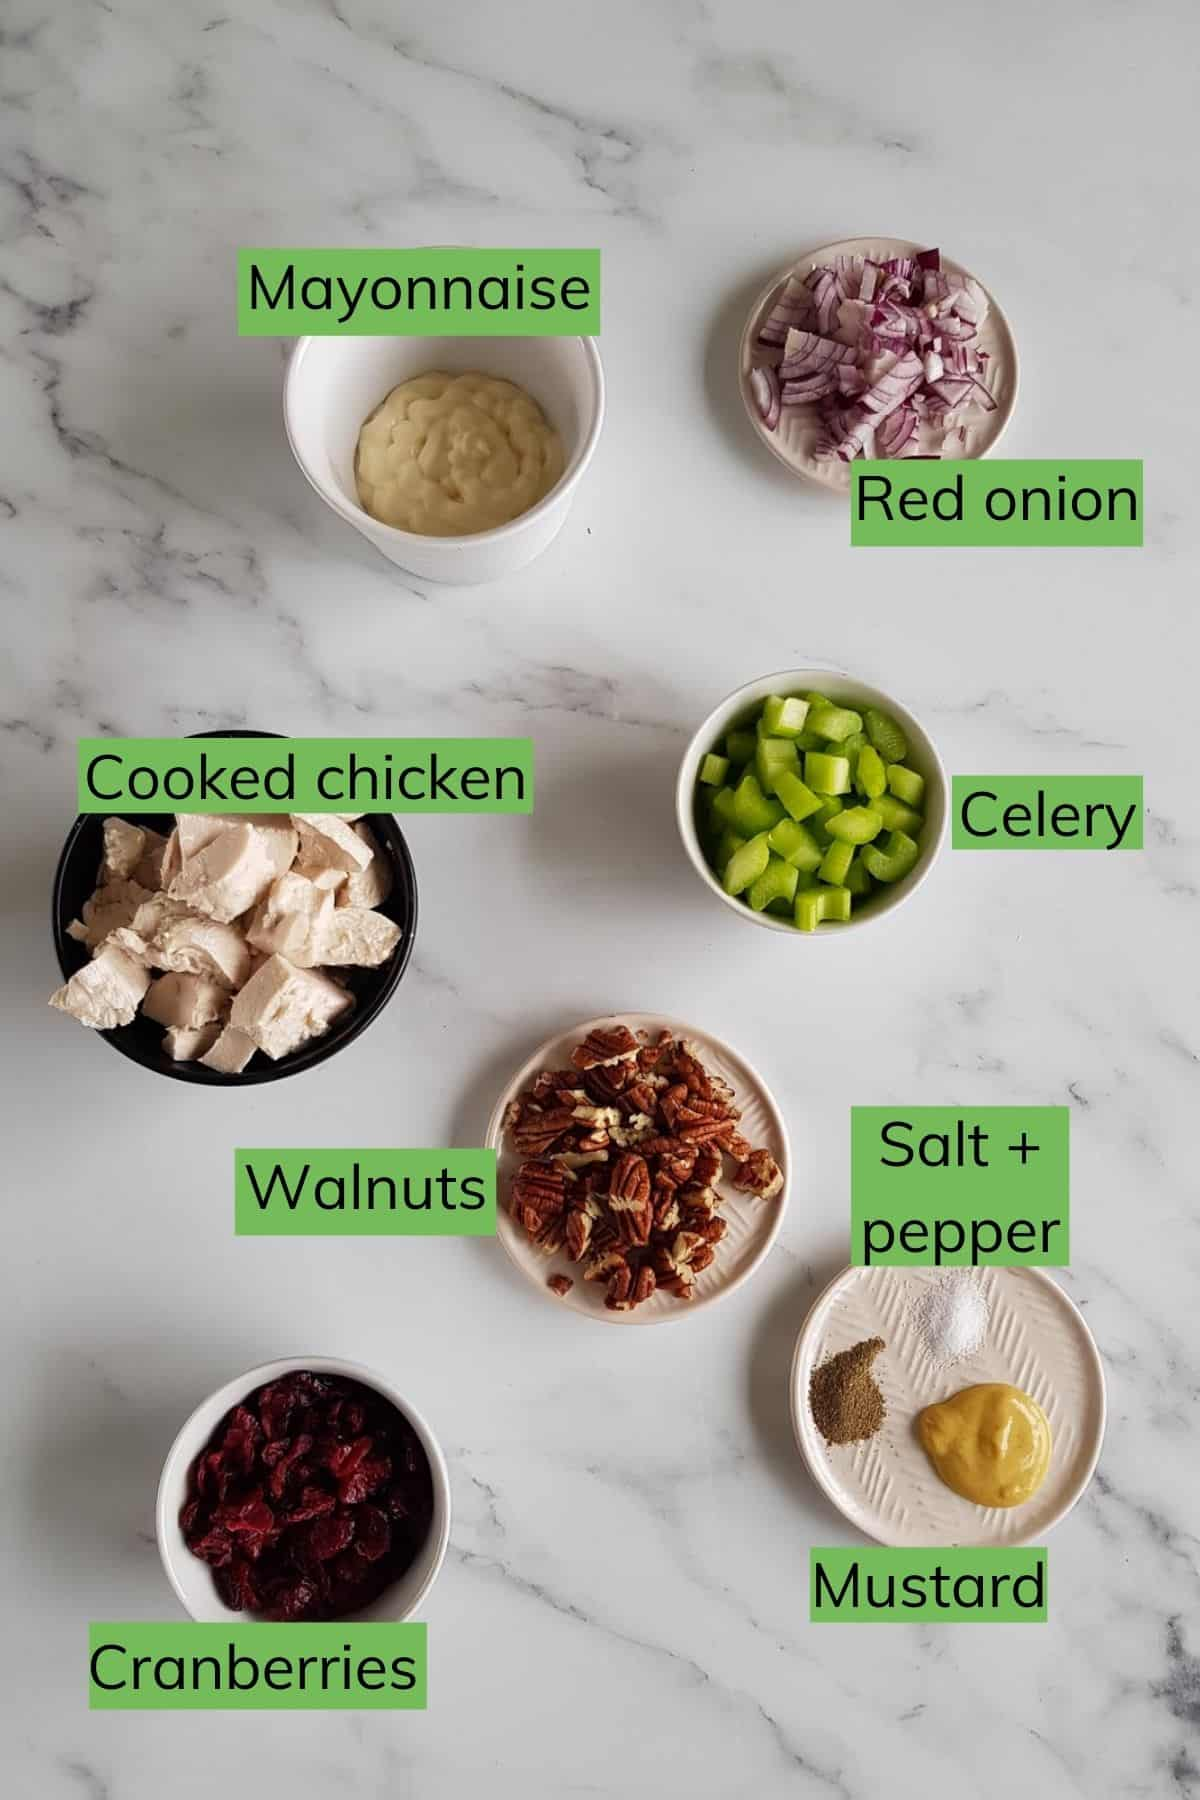 Ingredients for cranberry chicken salad laid out on a table.